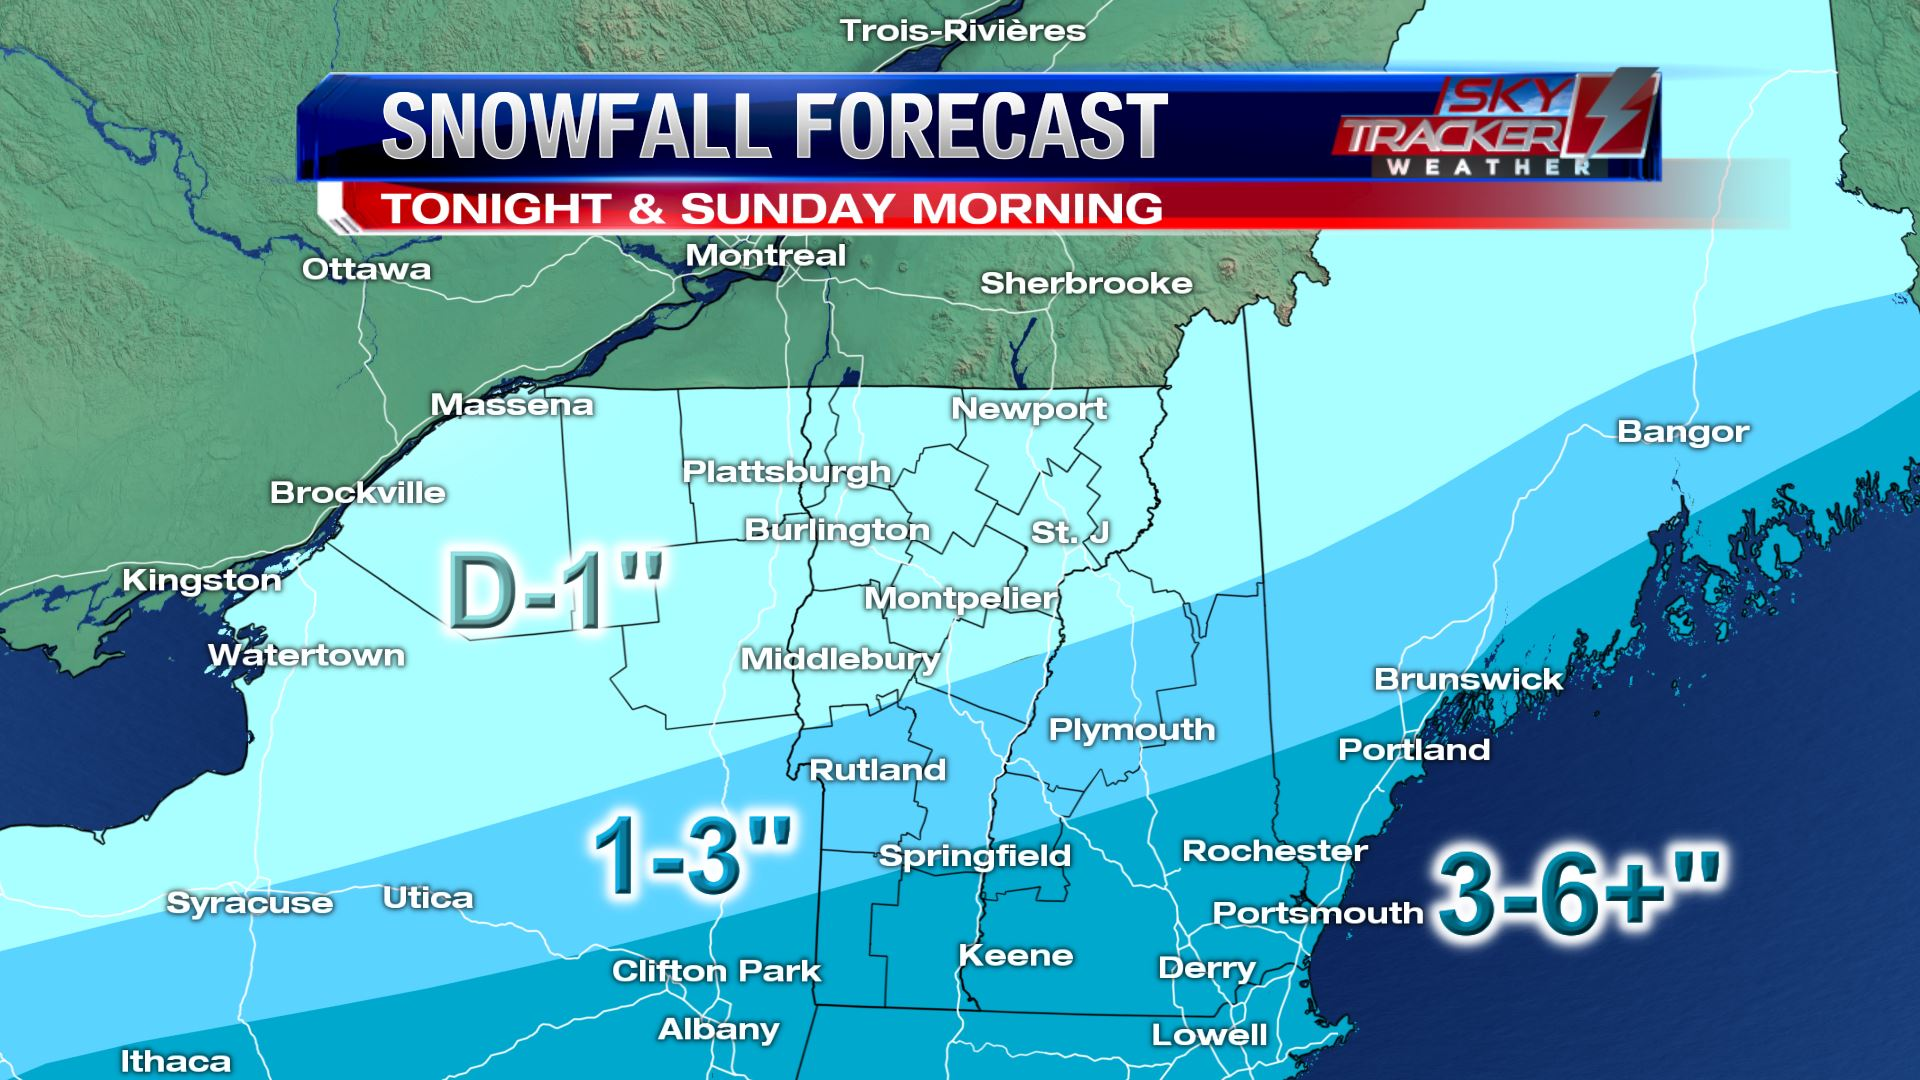 Snowfall expected by Sunday morning.